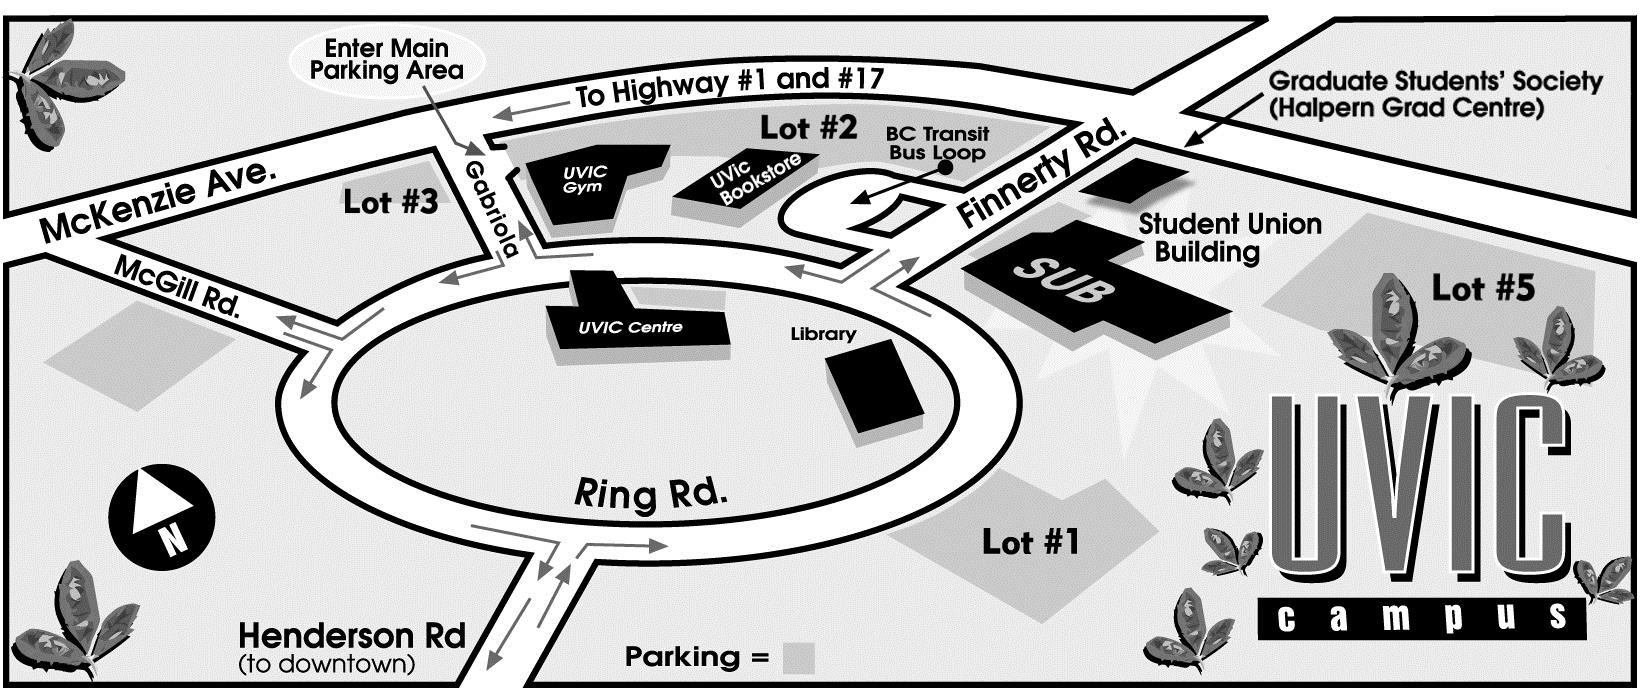 university of victoria campus map About Us Catering And Conferences university of victoria campus map